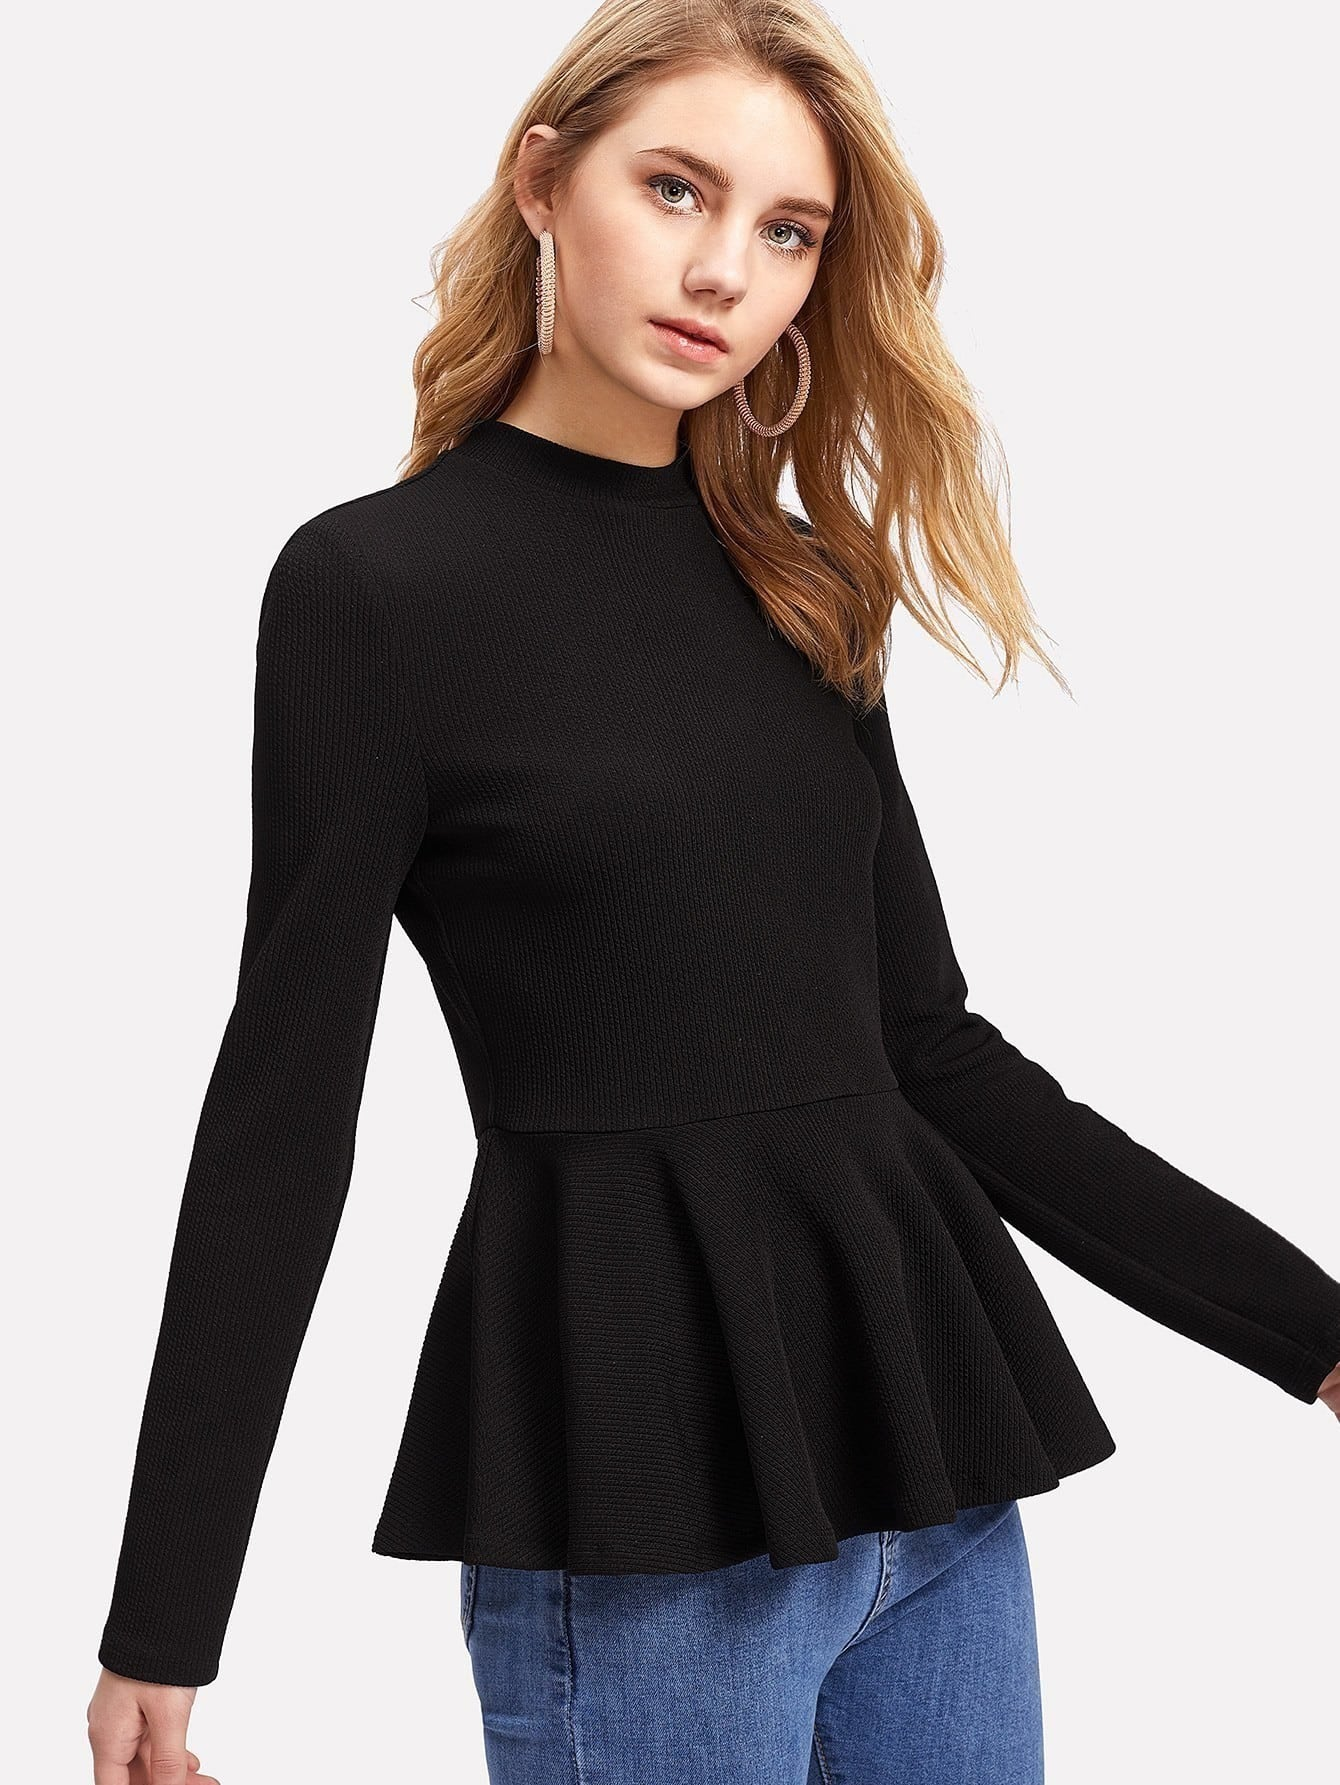 Ribbed Knit Ruffle Hem Peplum Top letter embroidered ribbed knit top